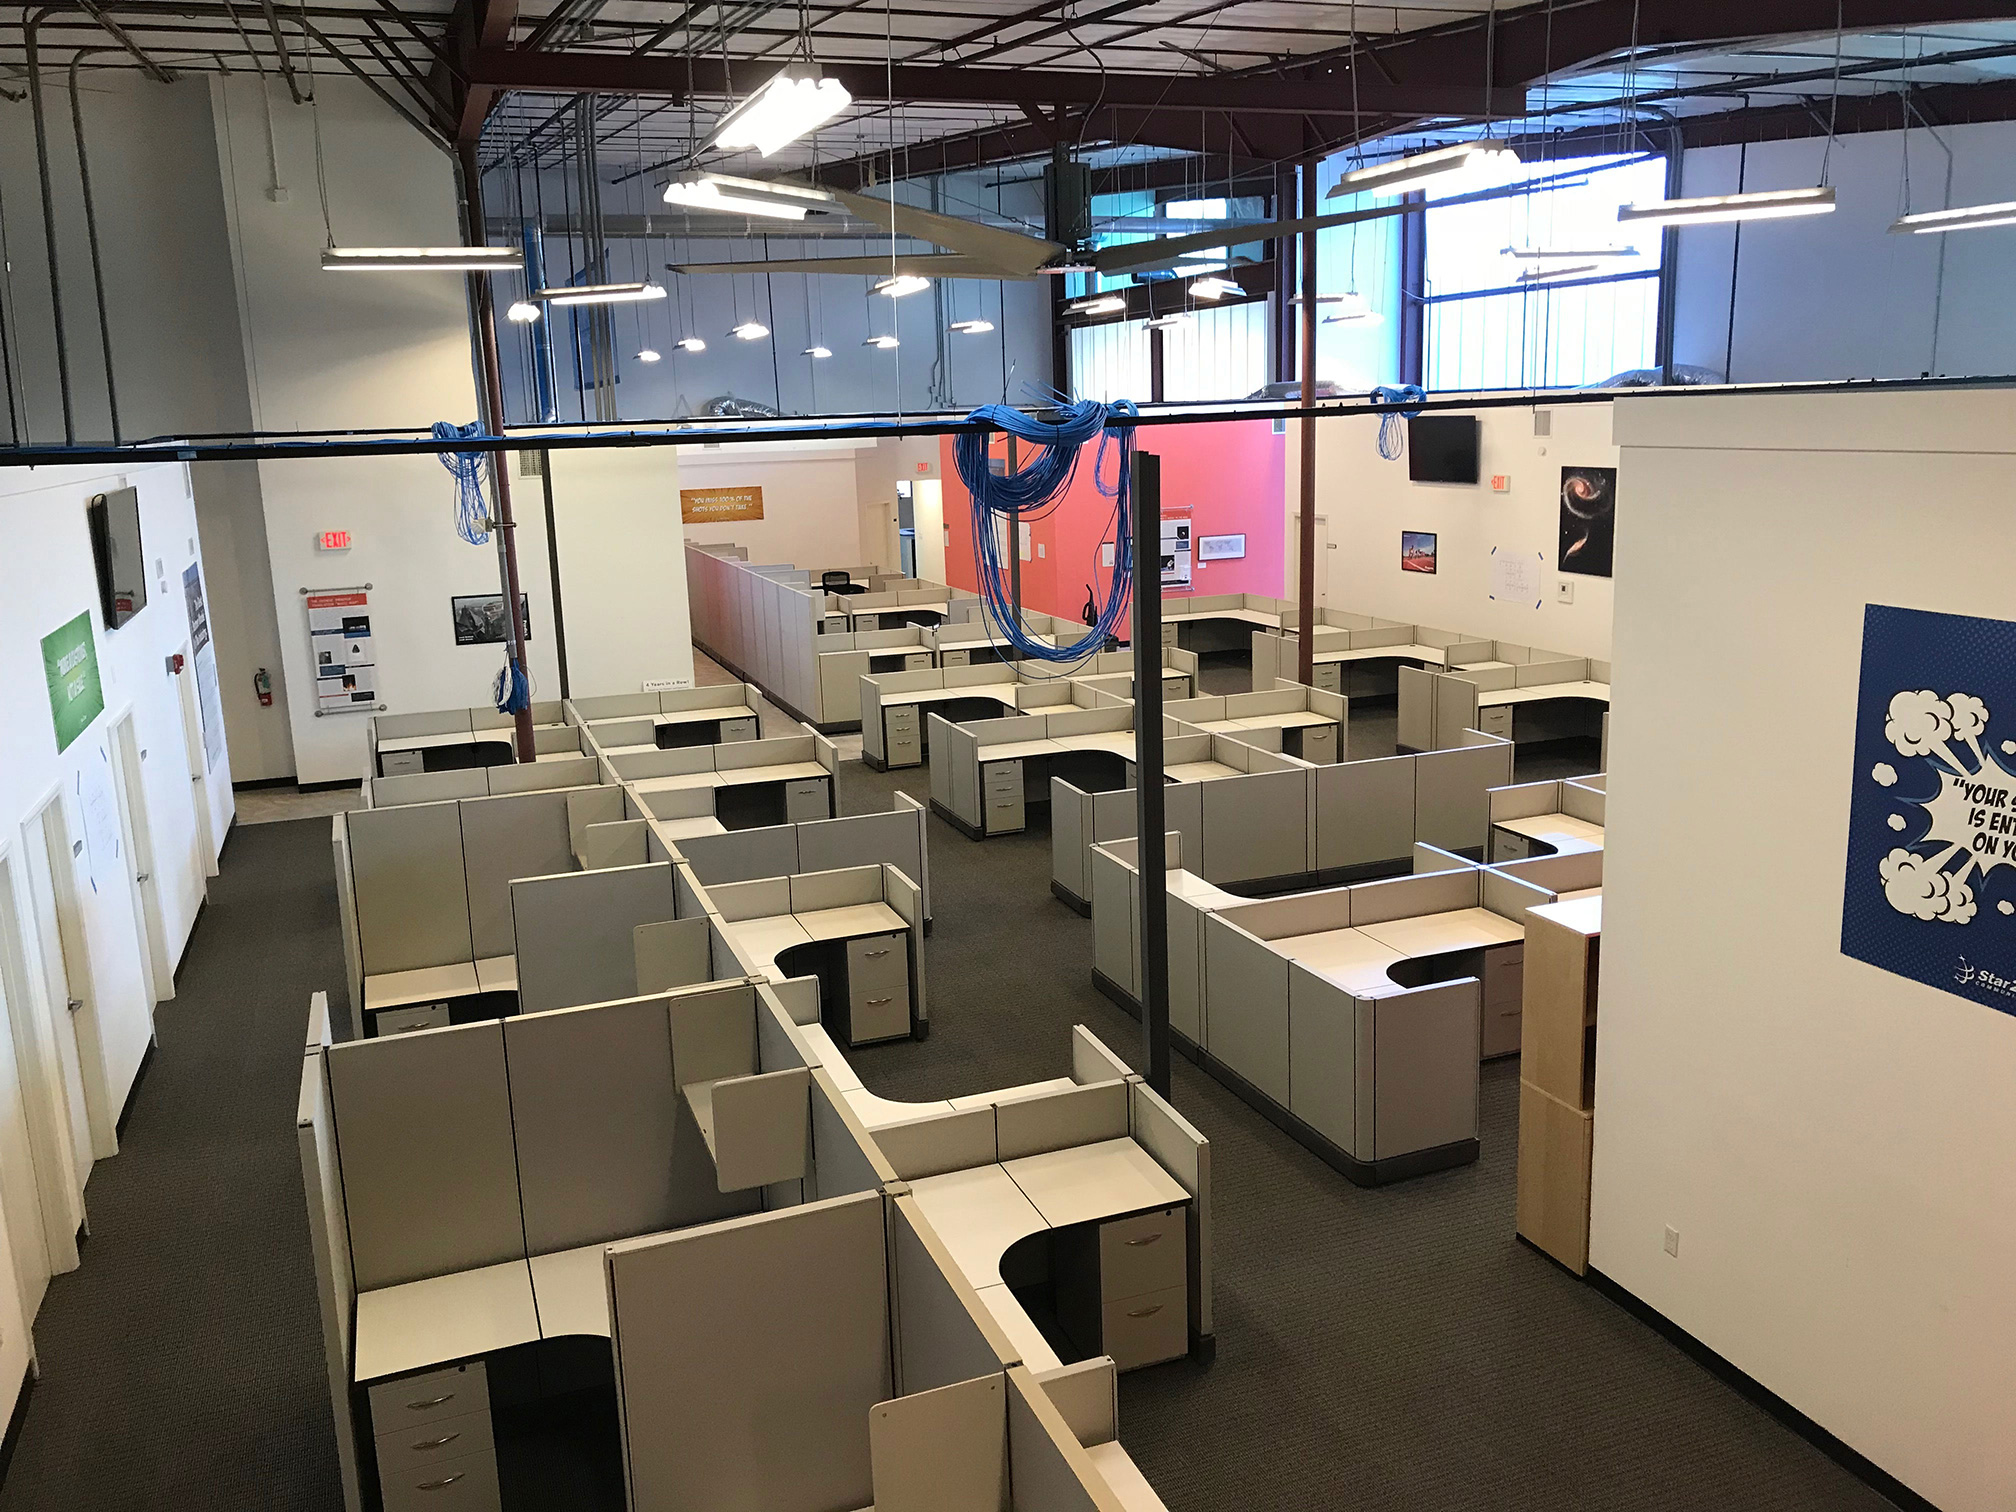 office-cubicles-for-sale-in-palmetto-florida-2.jpg